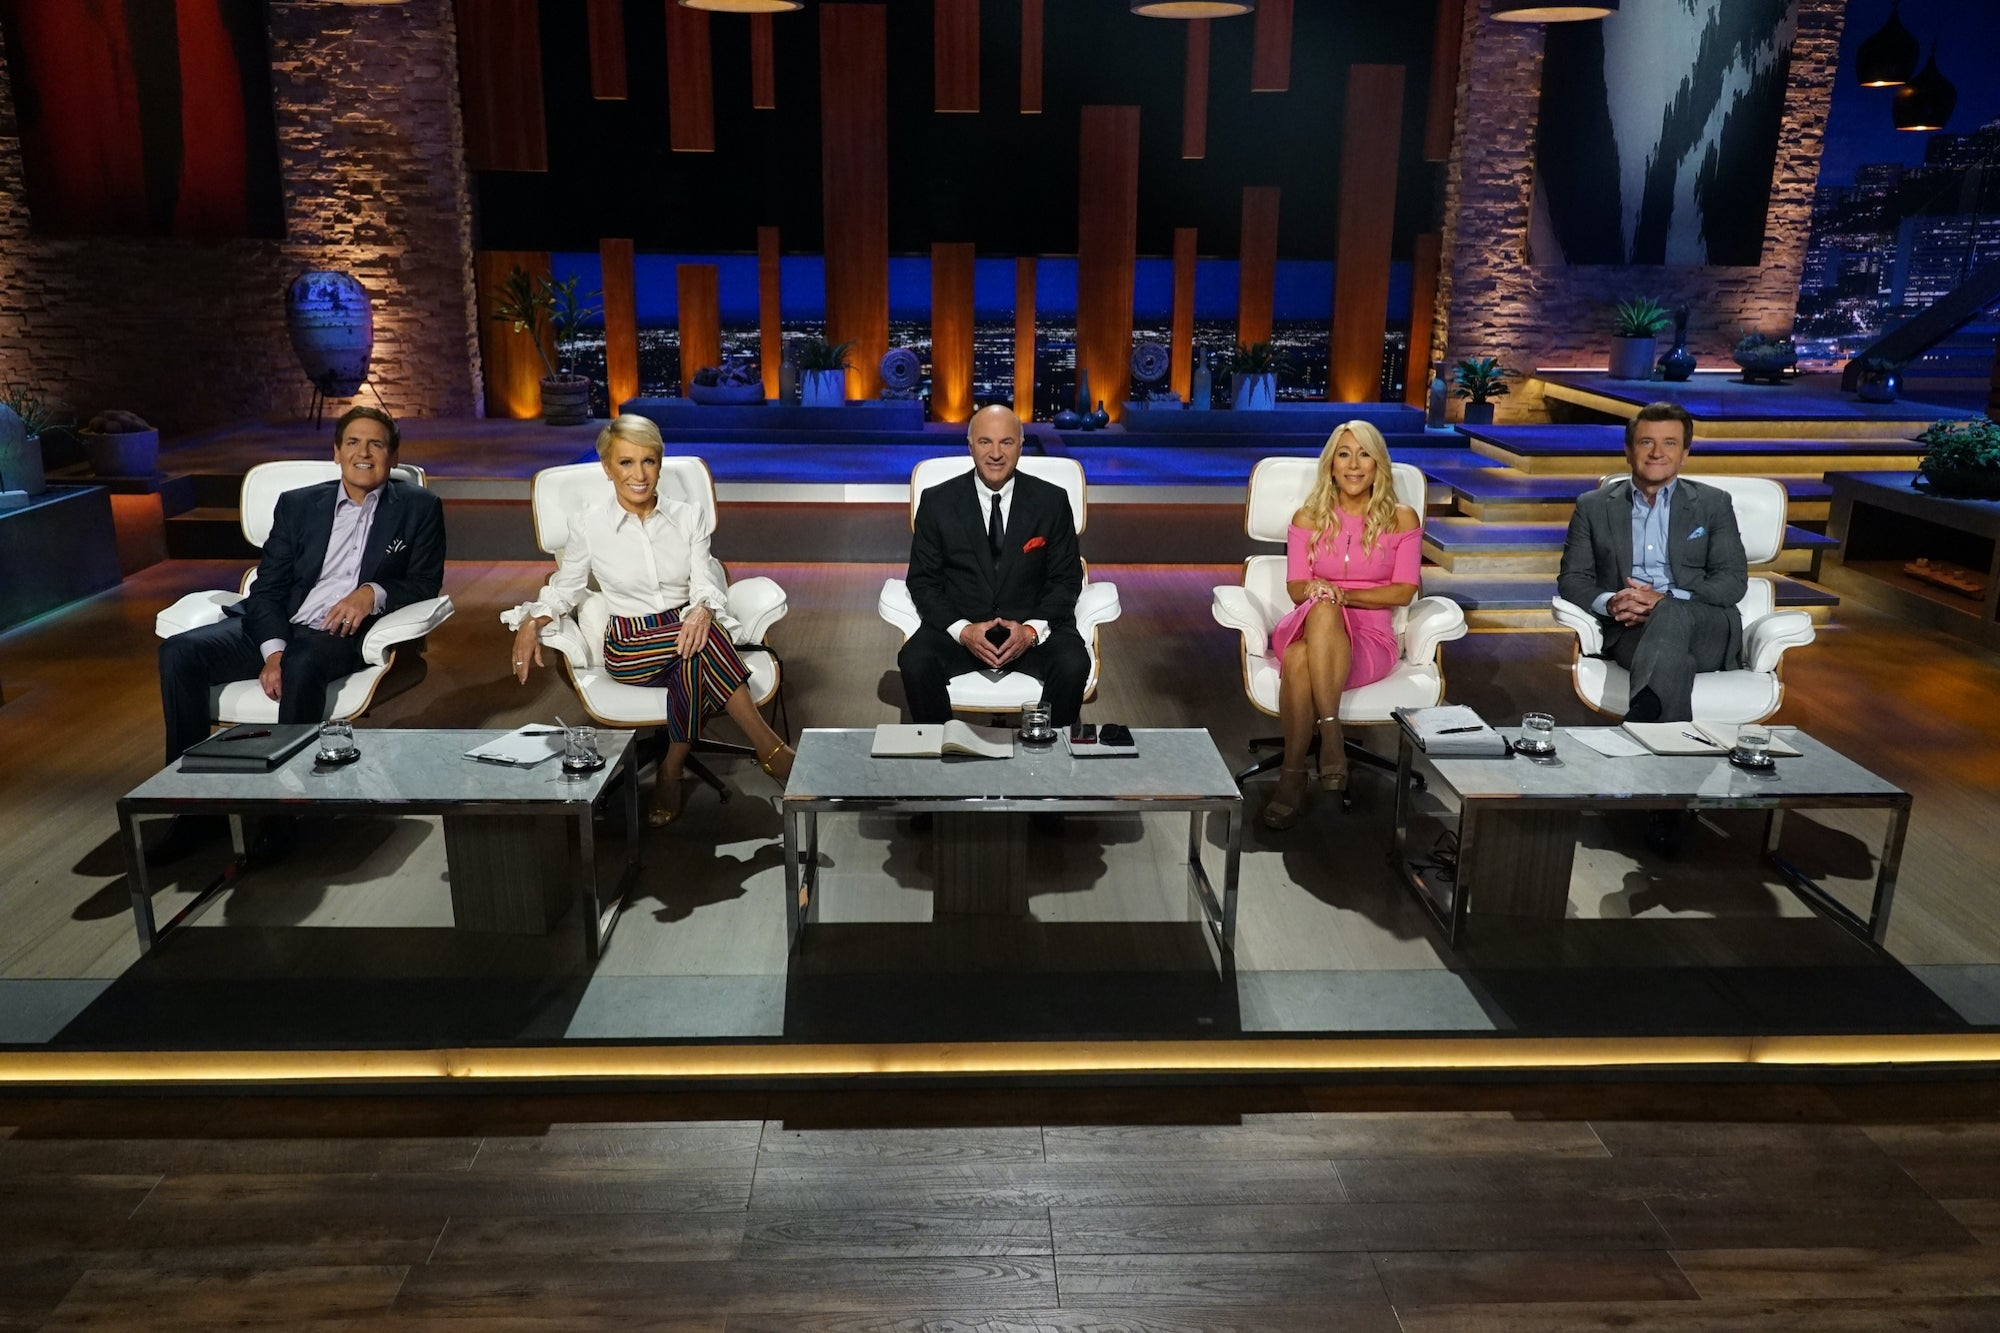 Here's What Happened After They Nabbed a $500,000 Investment on 'Shark Tank'